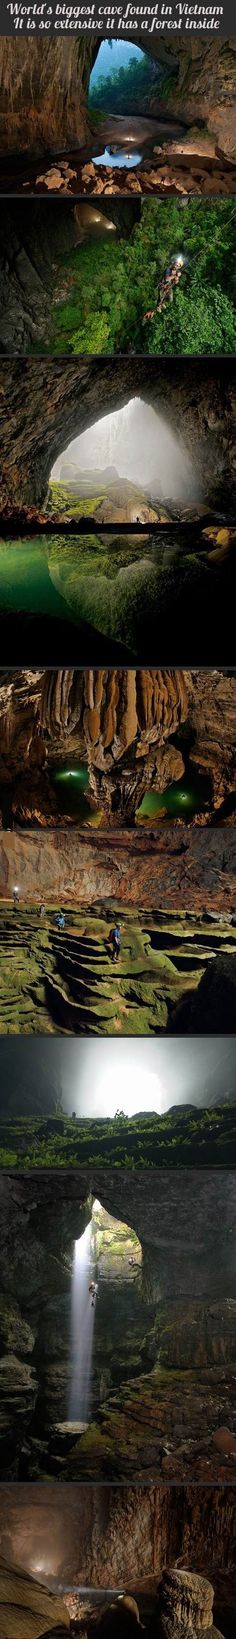 Explore the caves of Hang Son Doong, Vietnam, part of a network of over 150 caves. Surrounded by jungle and used in the Vietnam war as a hideout from American bombardments, the cave passage is so large that it could hold a block of 40-storey skyscrapers.